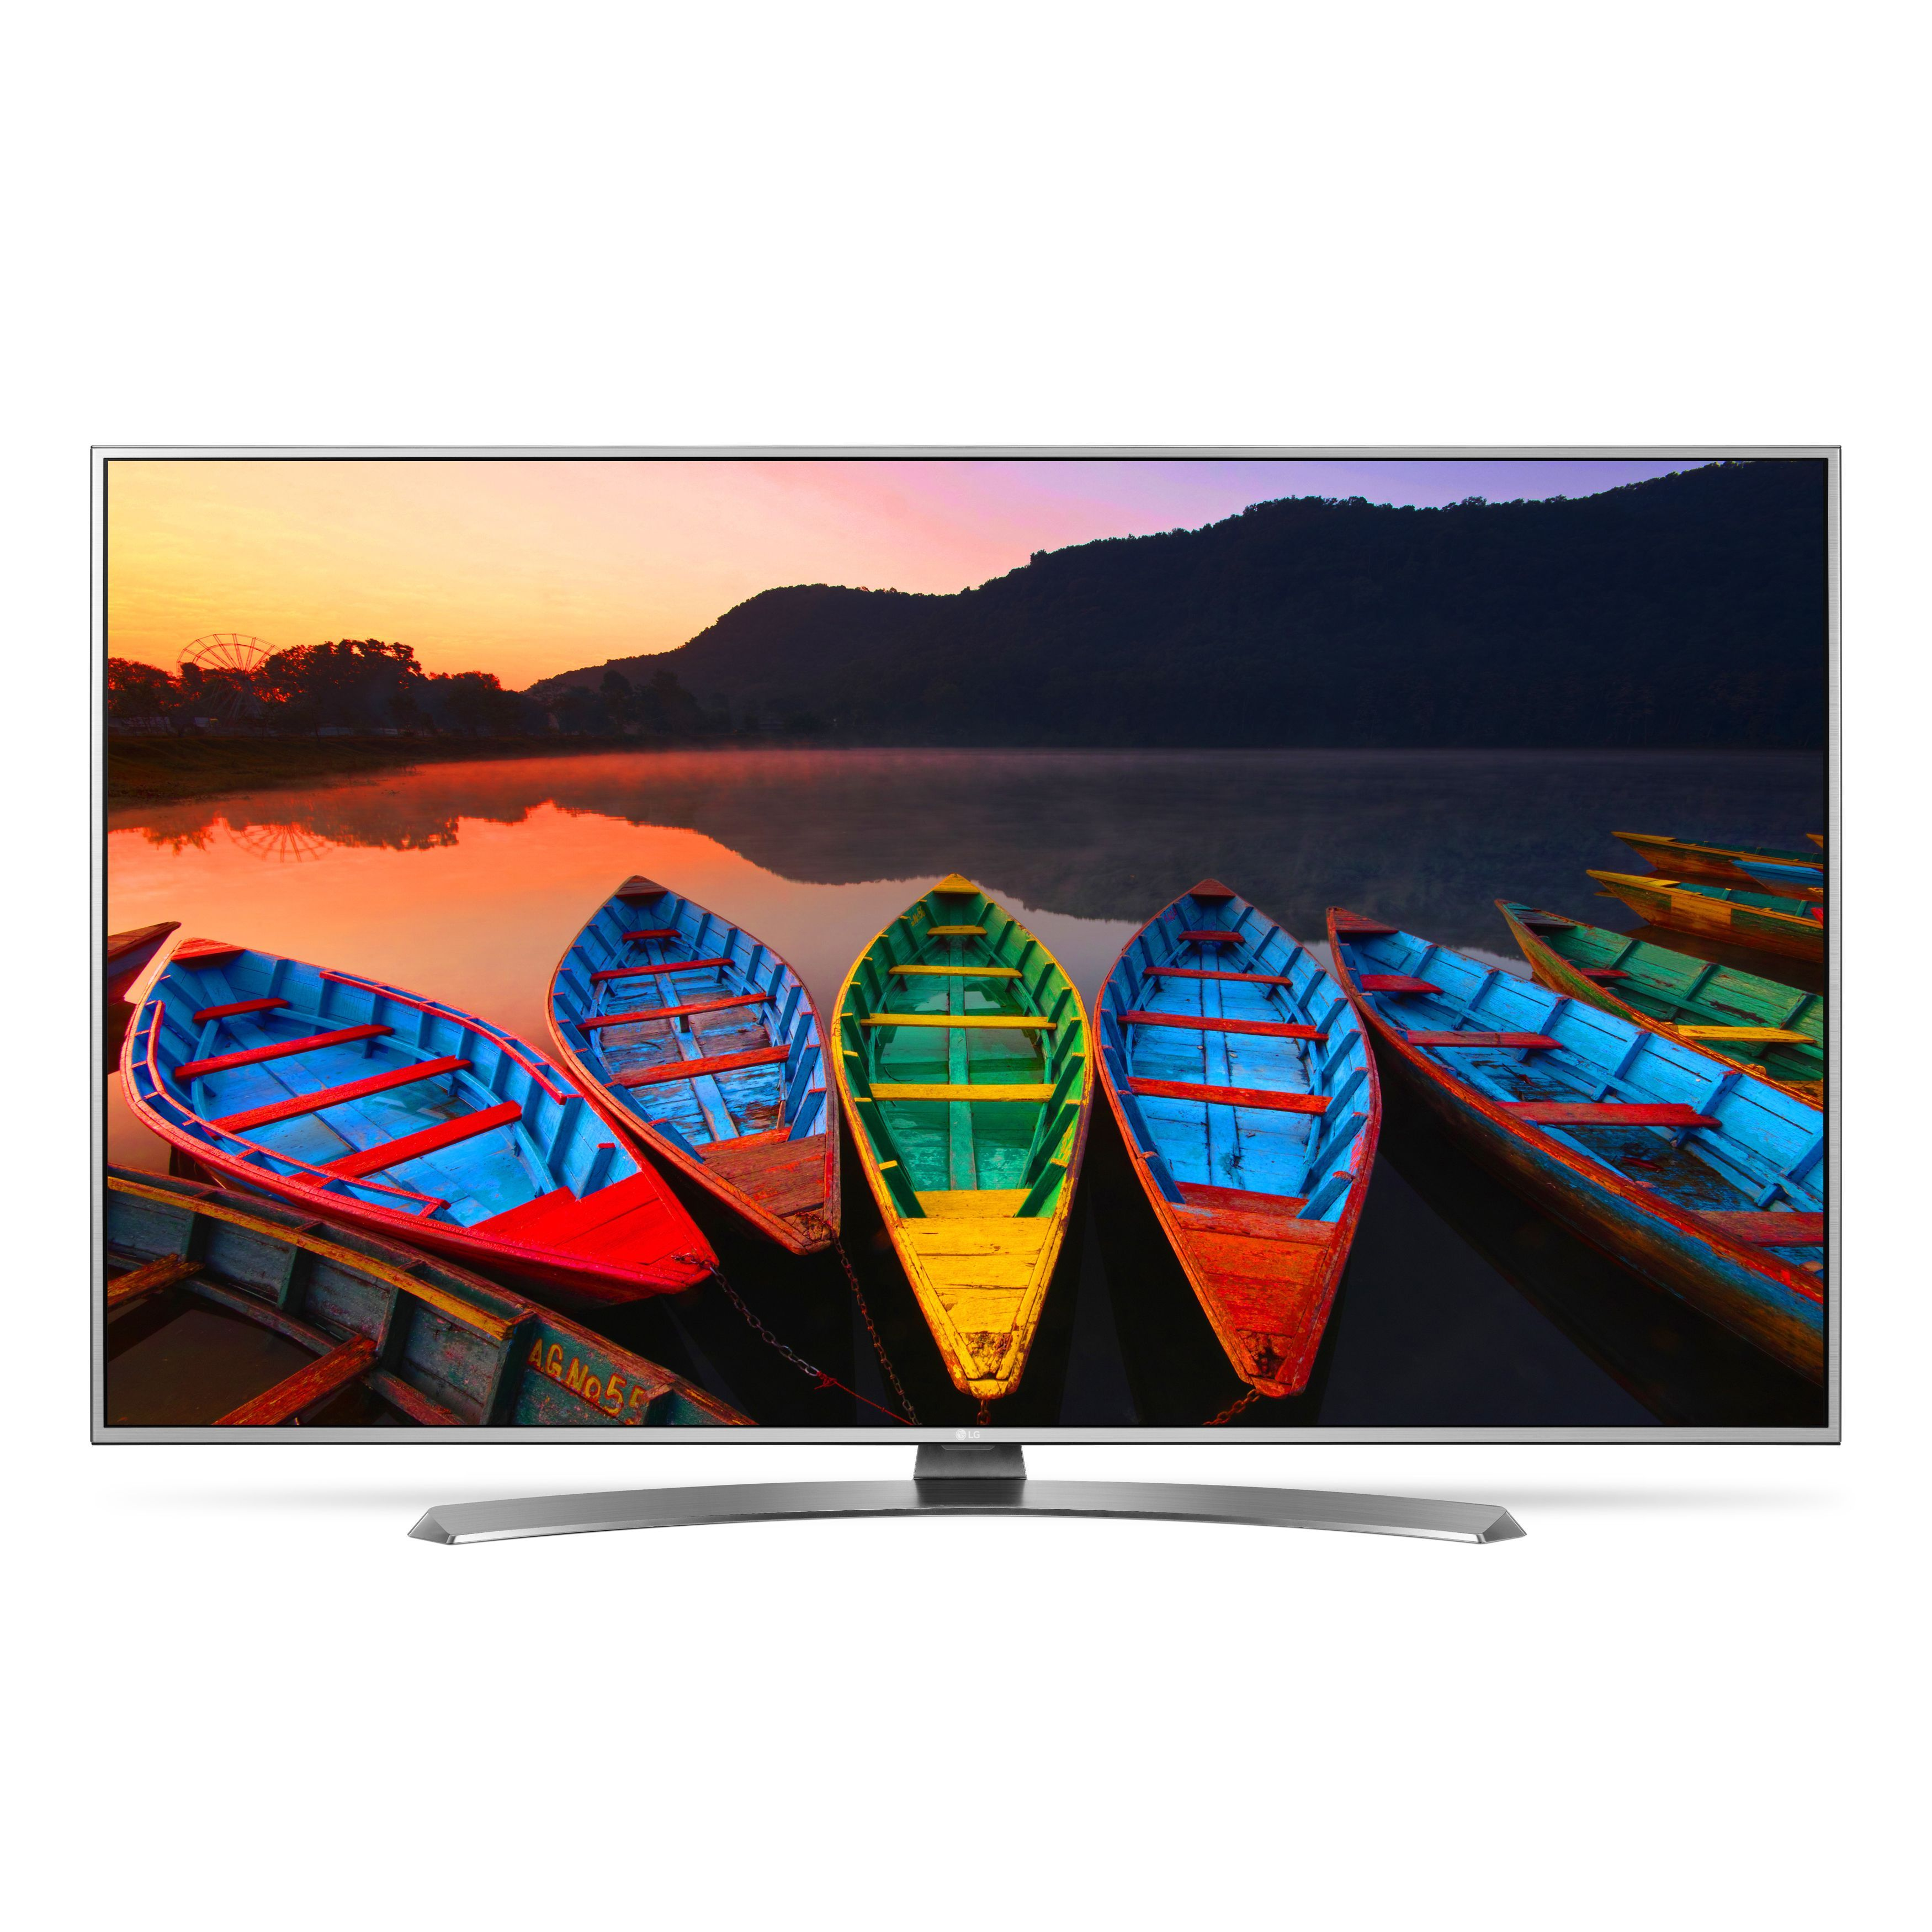 Lg 65uh7700 65inch class 4k super uhd led television with